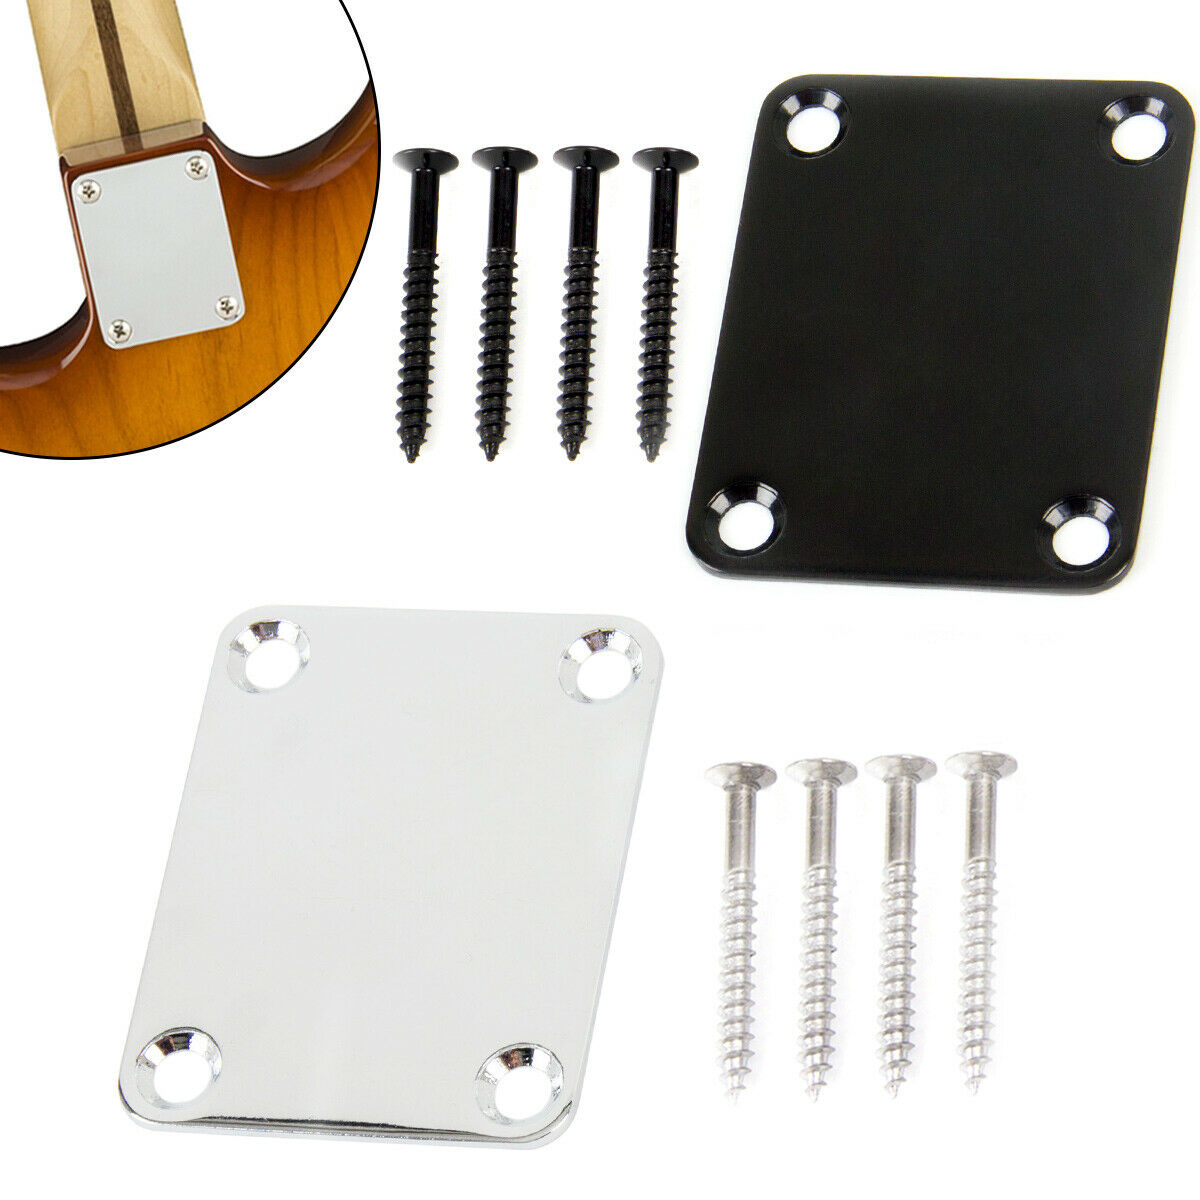 Electric Guitar Neck Plate /& 4 Screws For Strat//Tele Style Electric Guitar Gold /& Black